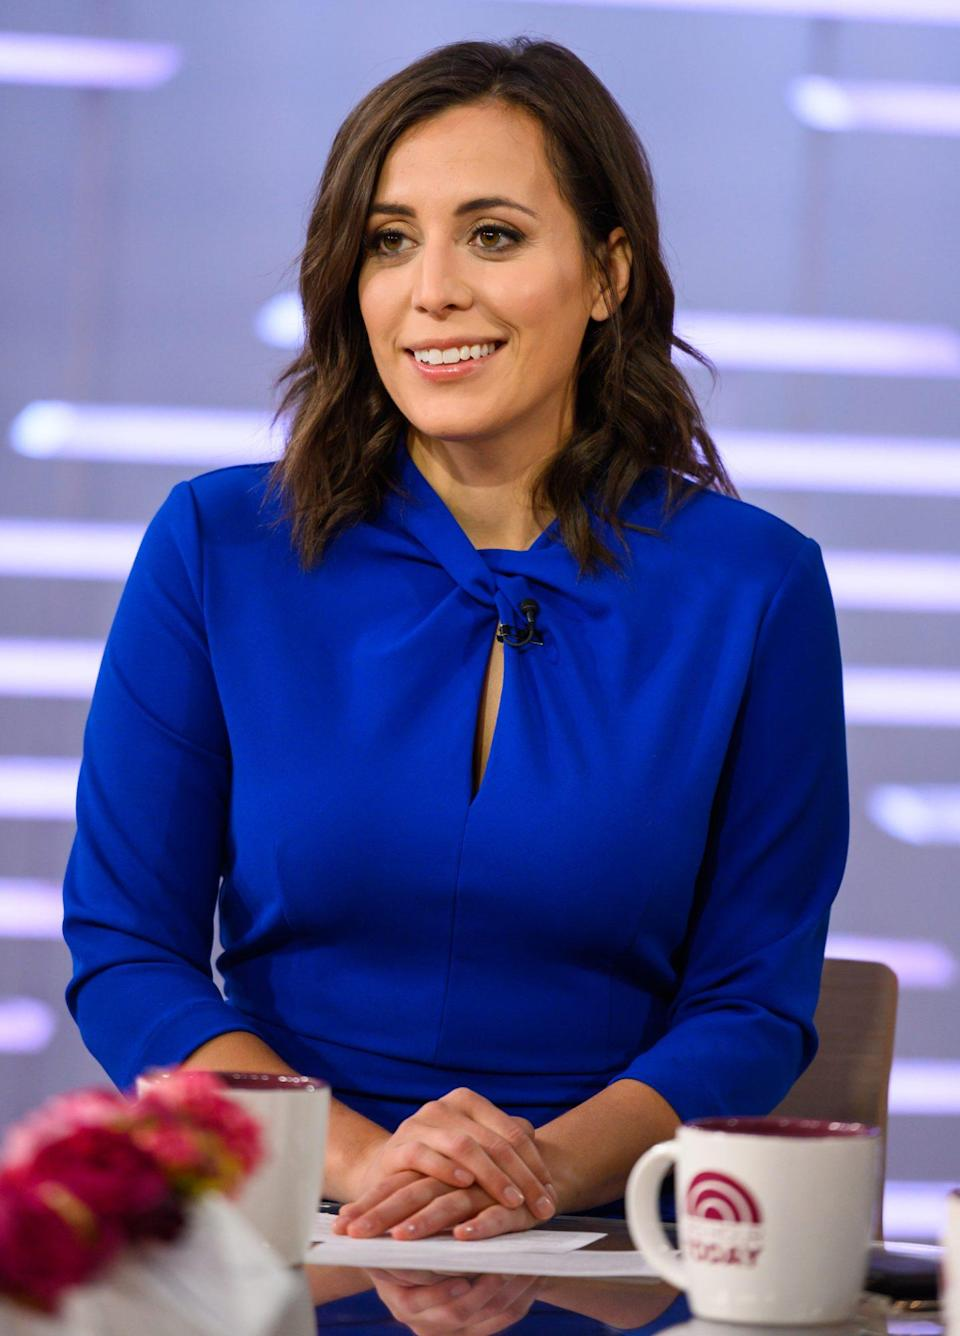 "<p>The NBC News chief White House Correspondent is trying to pack in as much as possible ahead of Election Day, for which she'll be ""racing home from North Carolina while trying to listen to the president's last late-night rallies in other key swing states.""</p> <p>Adds Jackson, 36, ""I figure it'll be my last shot at getting more than three hours of sleep for a while, so I'll try to get to bed by midnight.""</p> <p>After that, the <em>MSNBC Live with Hallie Jackson</em> host doesn't anticipate slowing down for at least 24 hours. ""The morning's a crazy scramble of prepping, editorial conversations, and touching base with sources. Since I'm broadcasting from the home studio, my partner plans to make me breakfast. I'll feed my daughter while juggling calls, as usual. Then, it's showtime, and after that, the trek to the White House to start my second 'shift' of the day — one that I'm expecting to roll right into Wednesday morning.""</p> <p>When it comes to preparing for her time at the White House, Jackson says that she expects ""to be in nonstop mode Tuesday night. I'll have a few essentials within arm's reach — Lara bars, beef jerky, my breast pump. I have an infant daughter, and at some point before the next morning I'll need to take 15 minutes to stash some milk for her,"" she says of daughter Monroe, whom <a href=""https://people.com/parents/hallie-jackson-frank-thorp-welcome-daughter-monroe/"" rel=""nofollow noopener"" target=""_blank"" data-ylk=""slk:she welcomed with partner Frank Thorp"" class=""link rapid-noclick-resp"">she welcomed with partner Frank Thorp</a> in March. </p> <p>""I quit drinking coffee almost two years ago, but if there's anything that could get me back on that train, it's Election Night 2020,"" she adds.</p>"